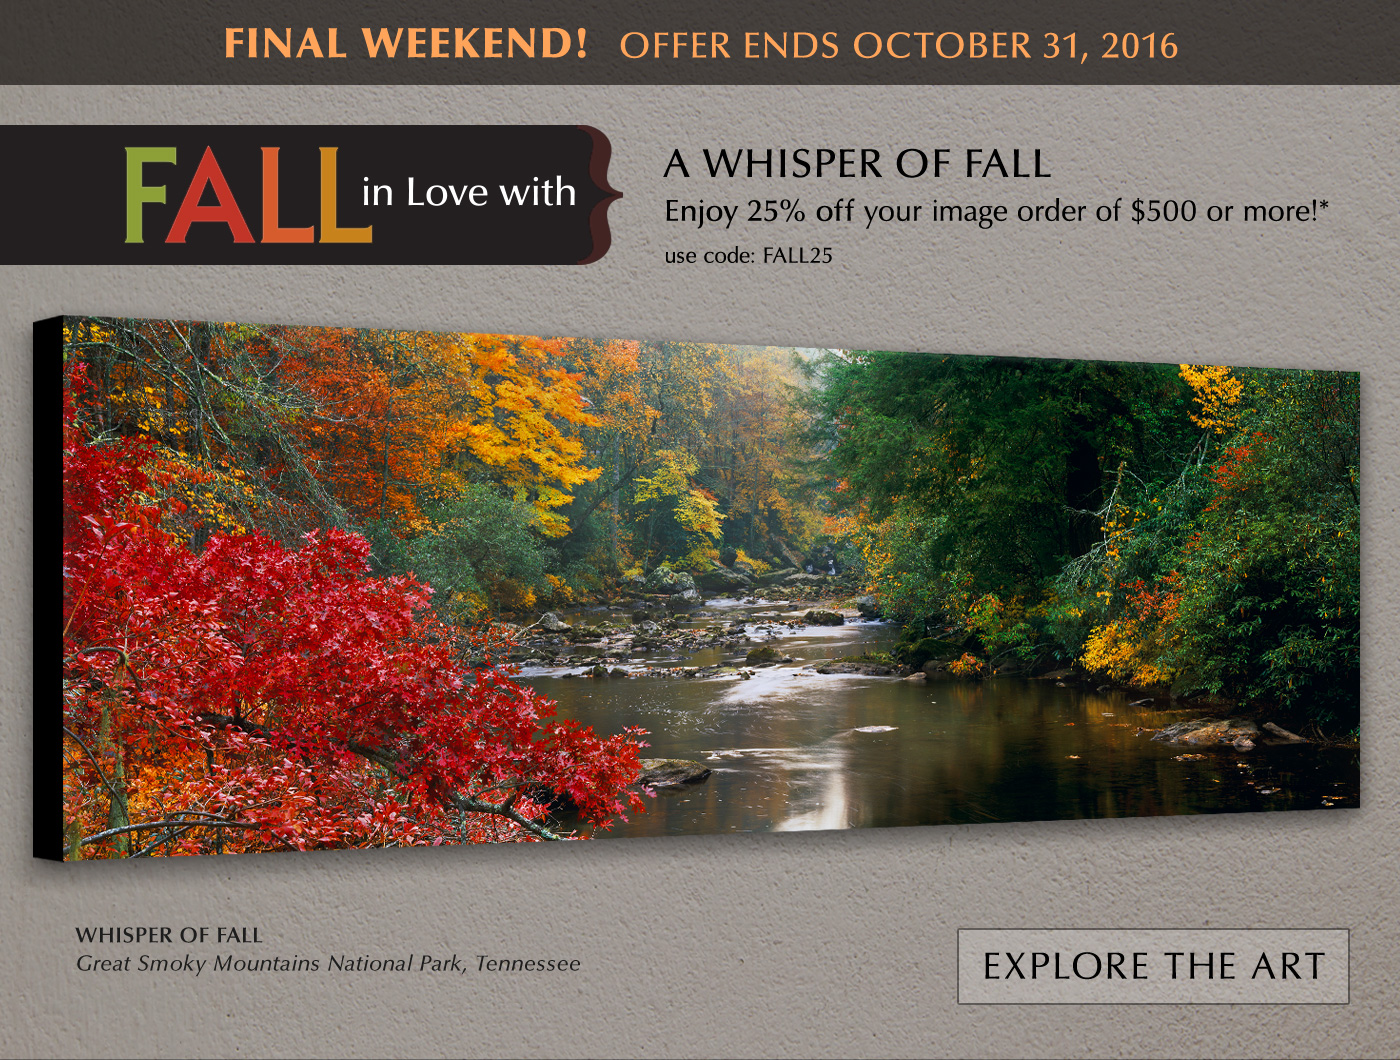 FALL in Love with a Whisper of Fall